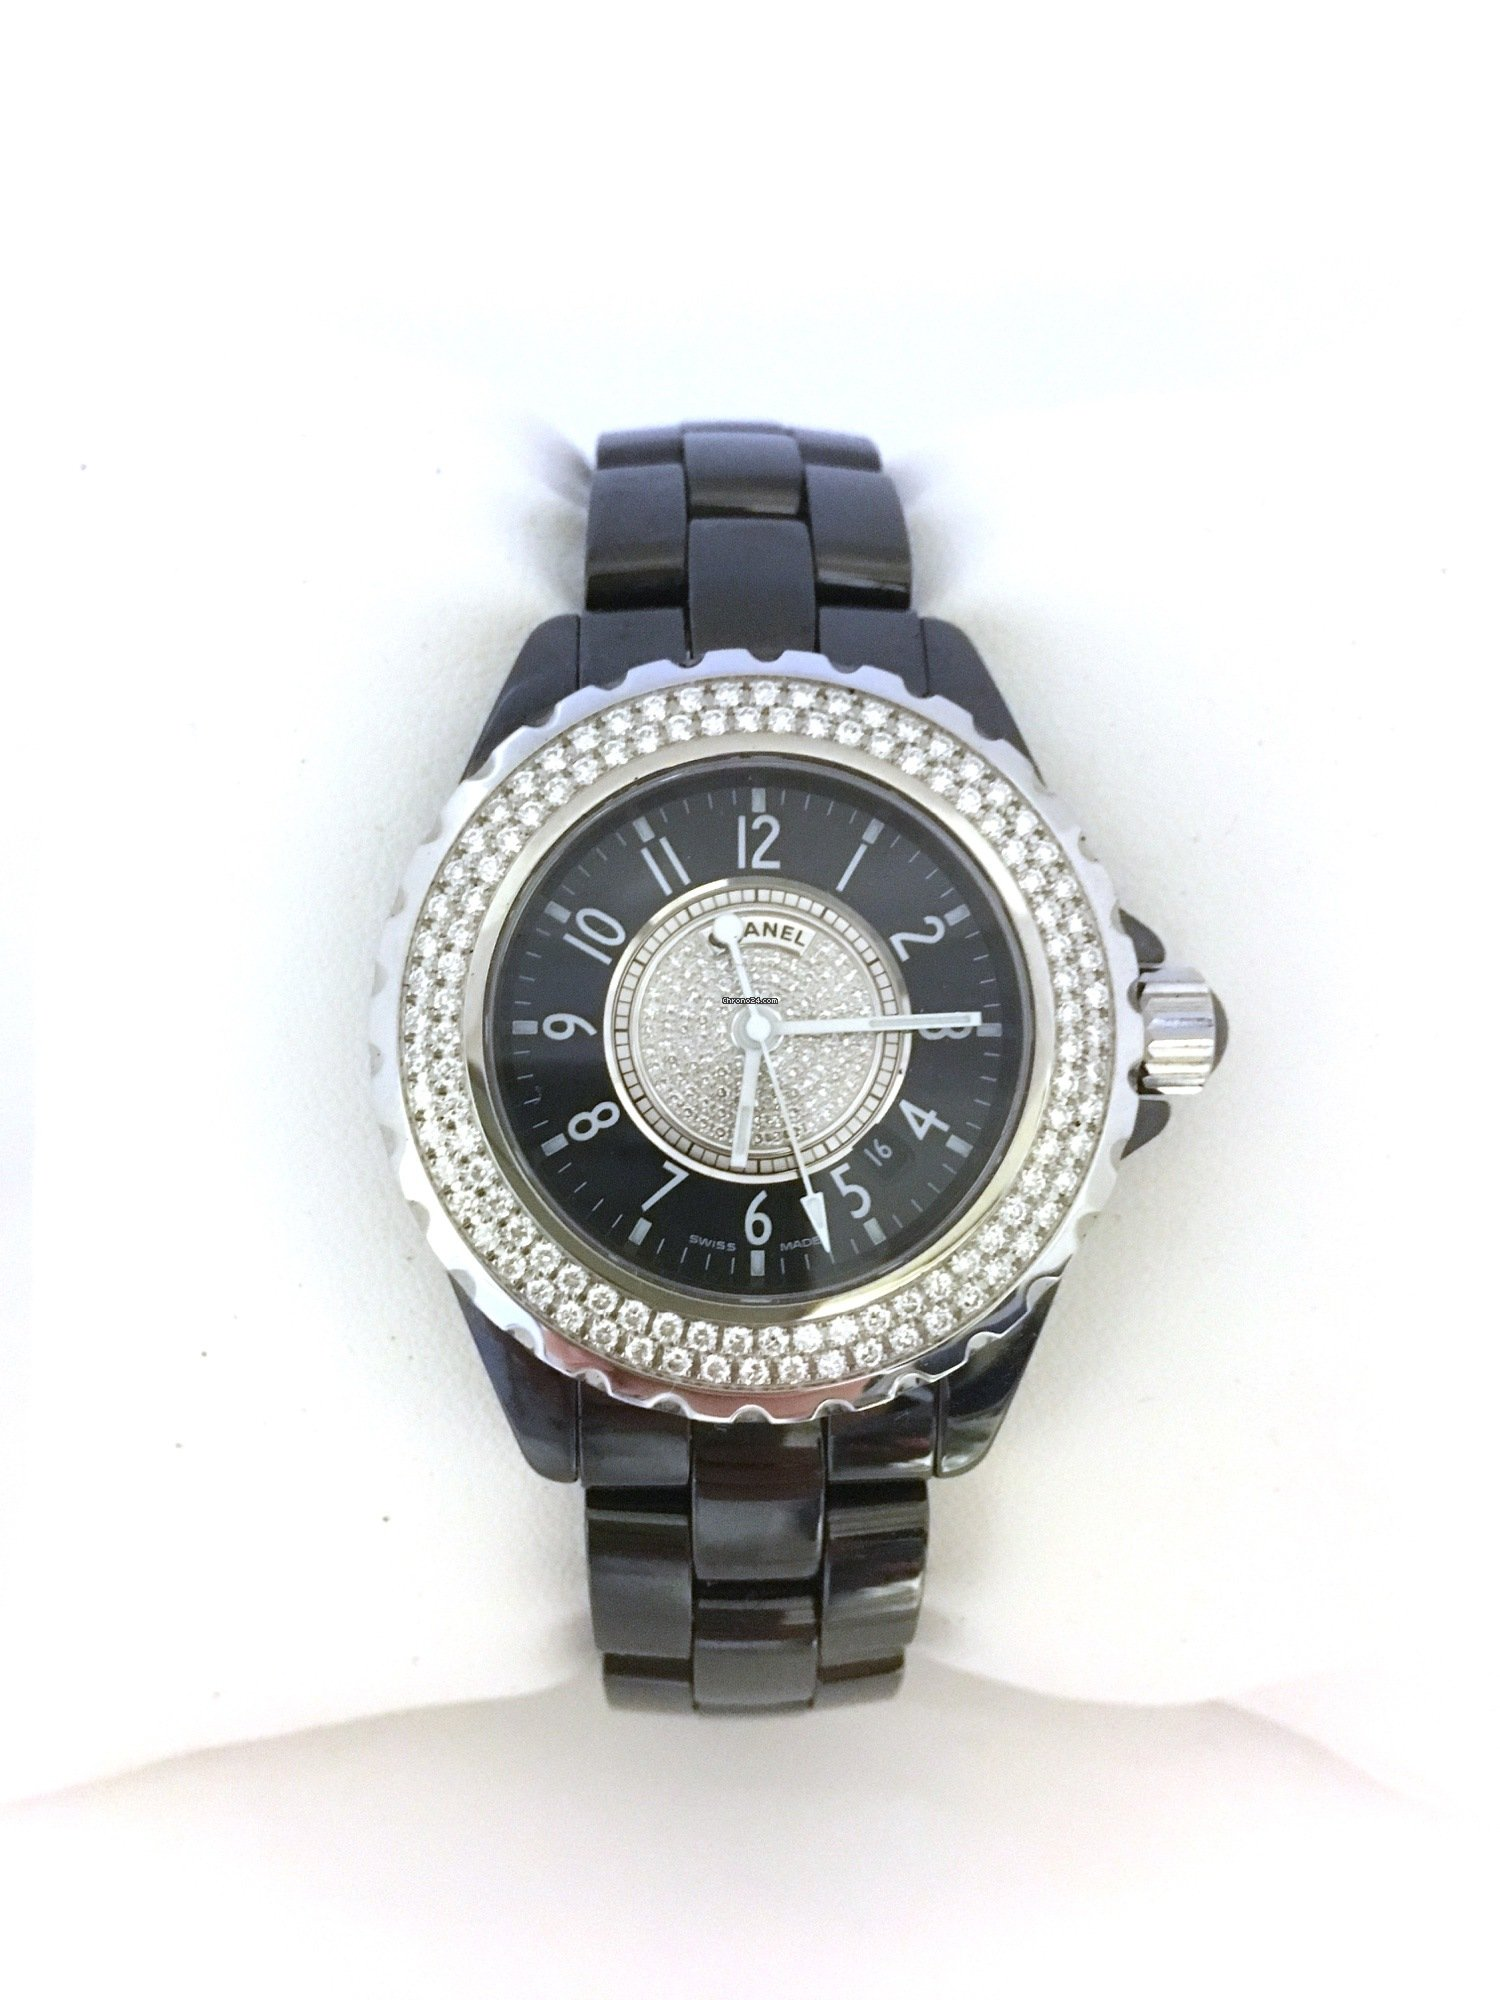 895ecb7d Chanel J12 H1708 Diamond Black Watch for $10,244 for sale from a ...